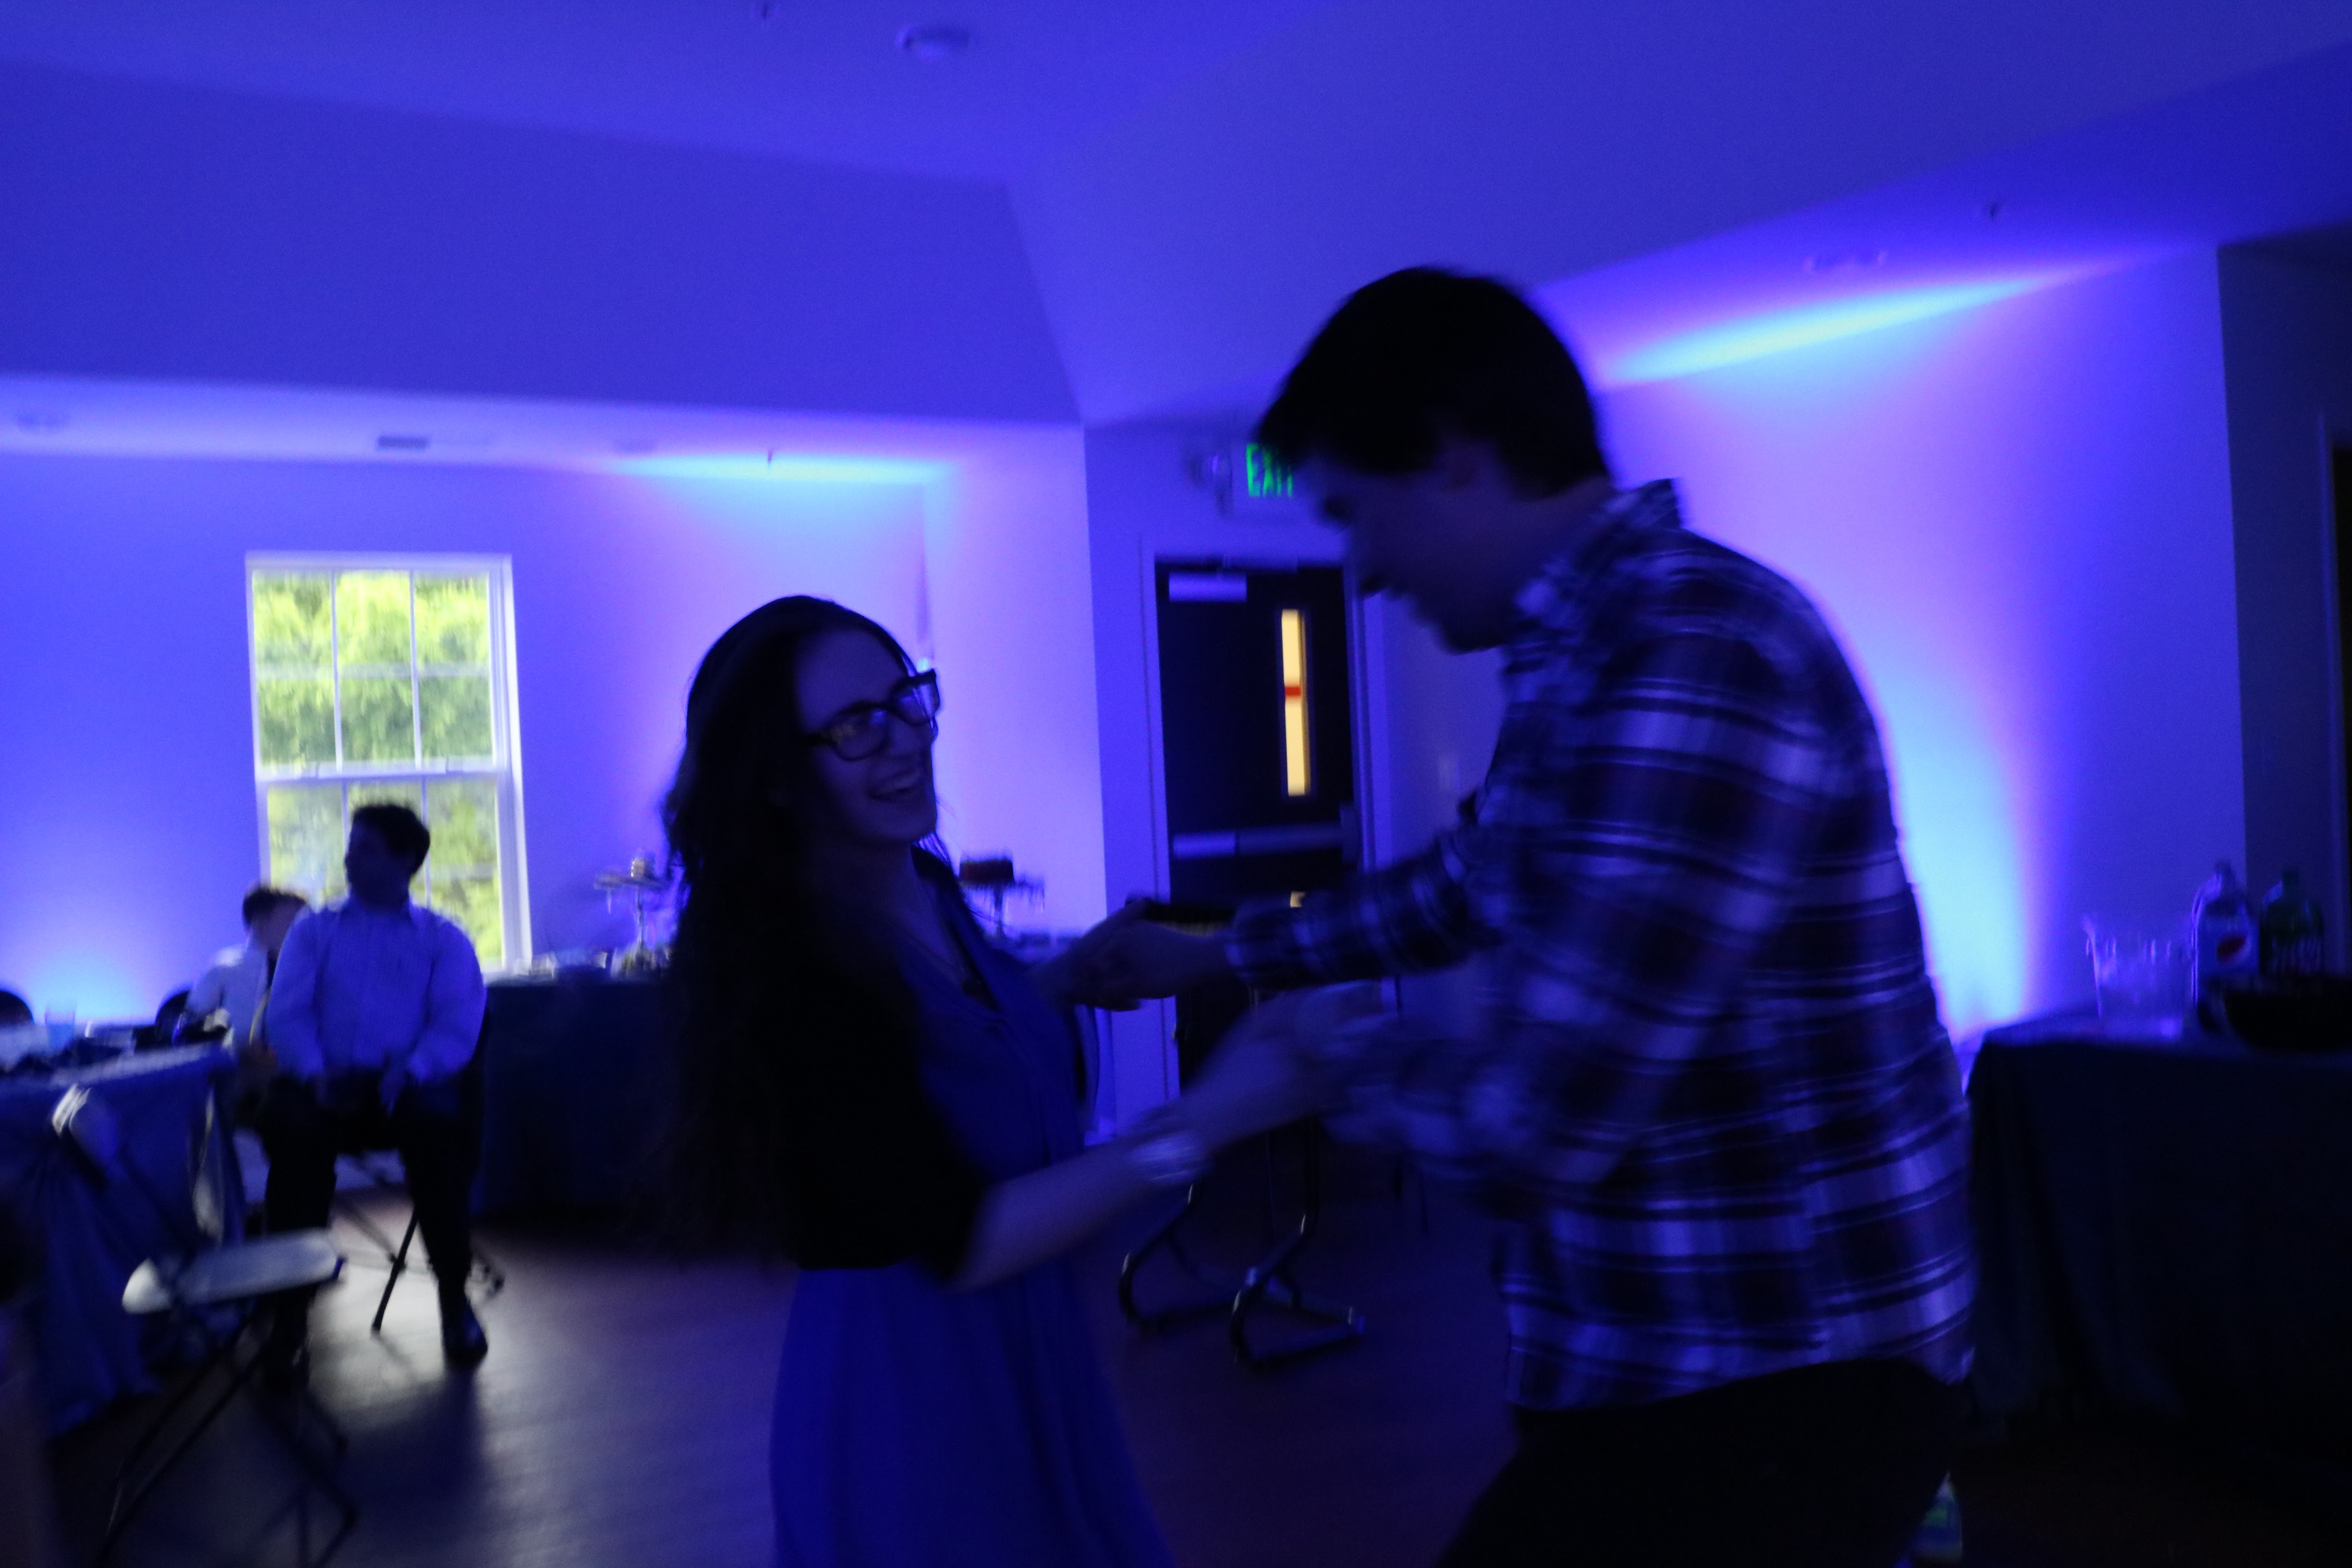 me and my boyfriend dancing and laughing in a blue-lit room